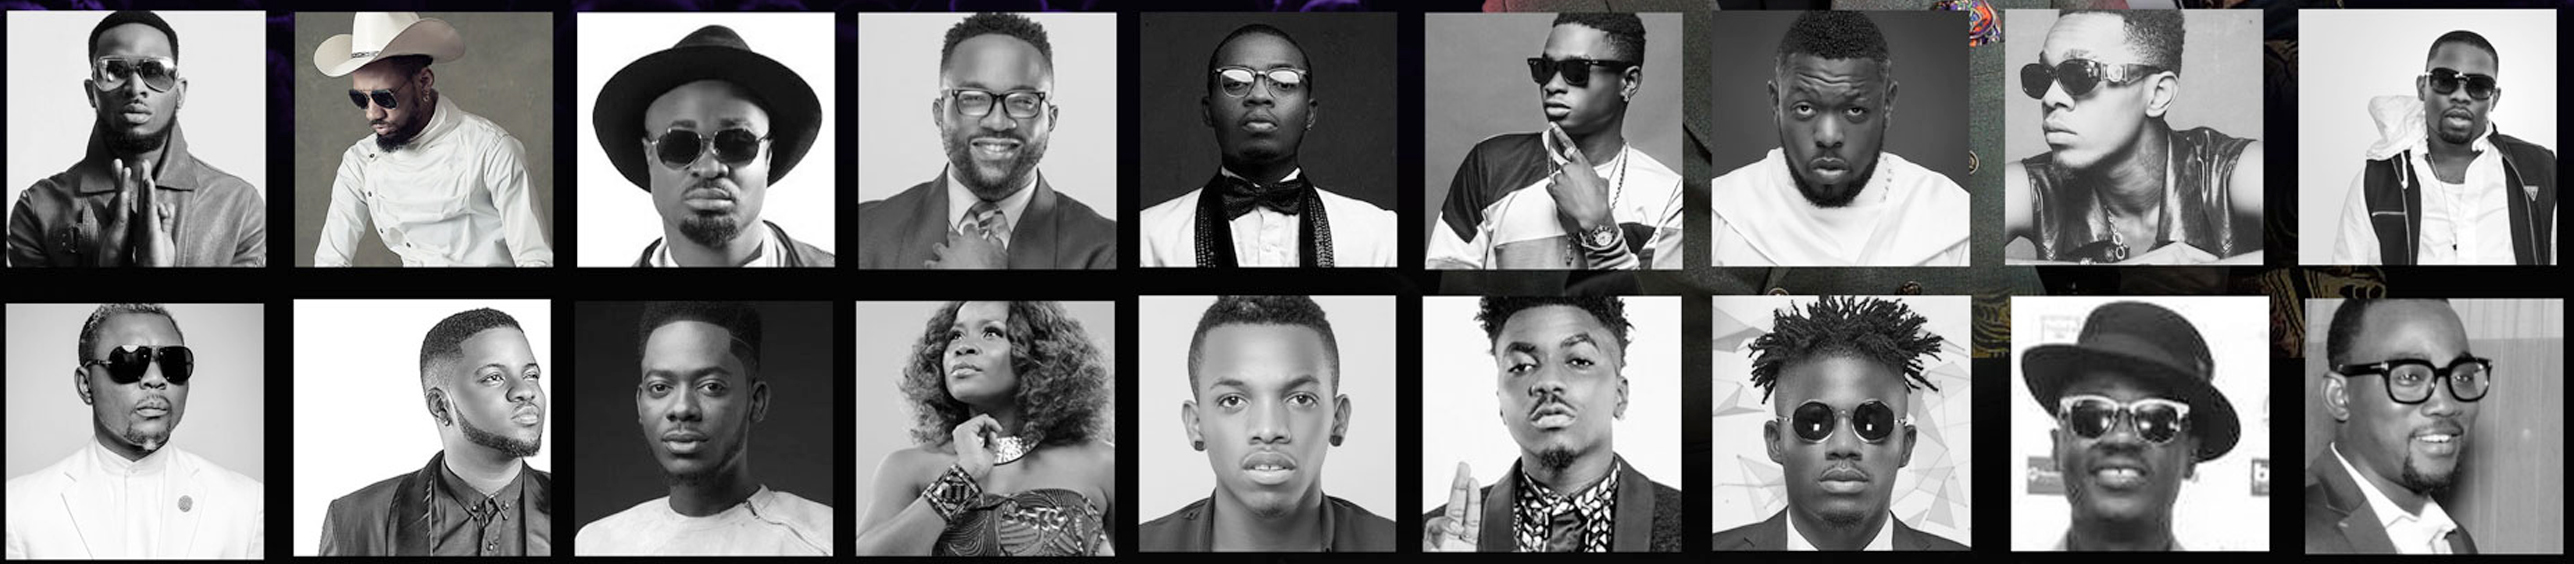 mfl2016: Five Star Music Host The Biggest Concert in Nigeria